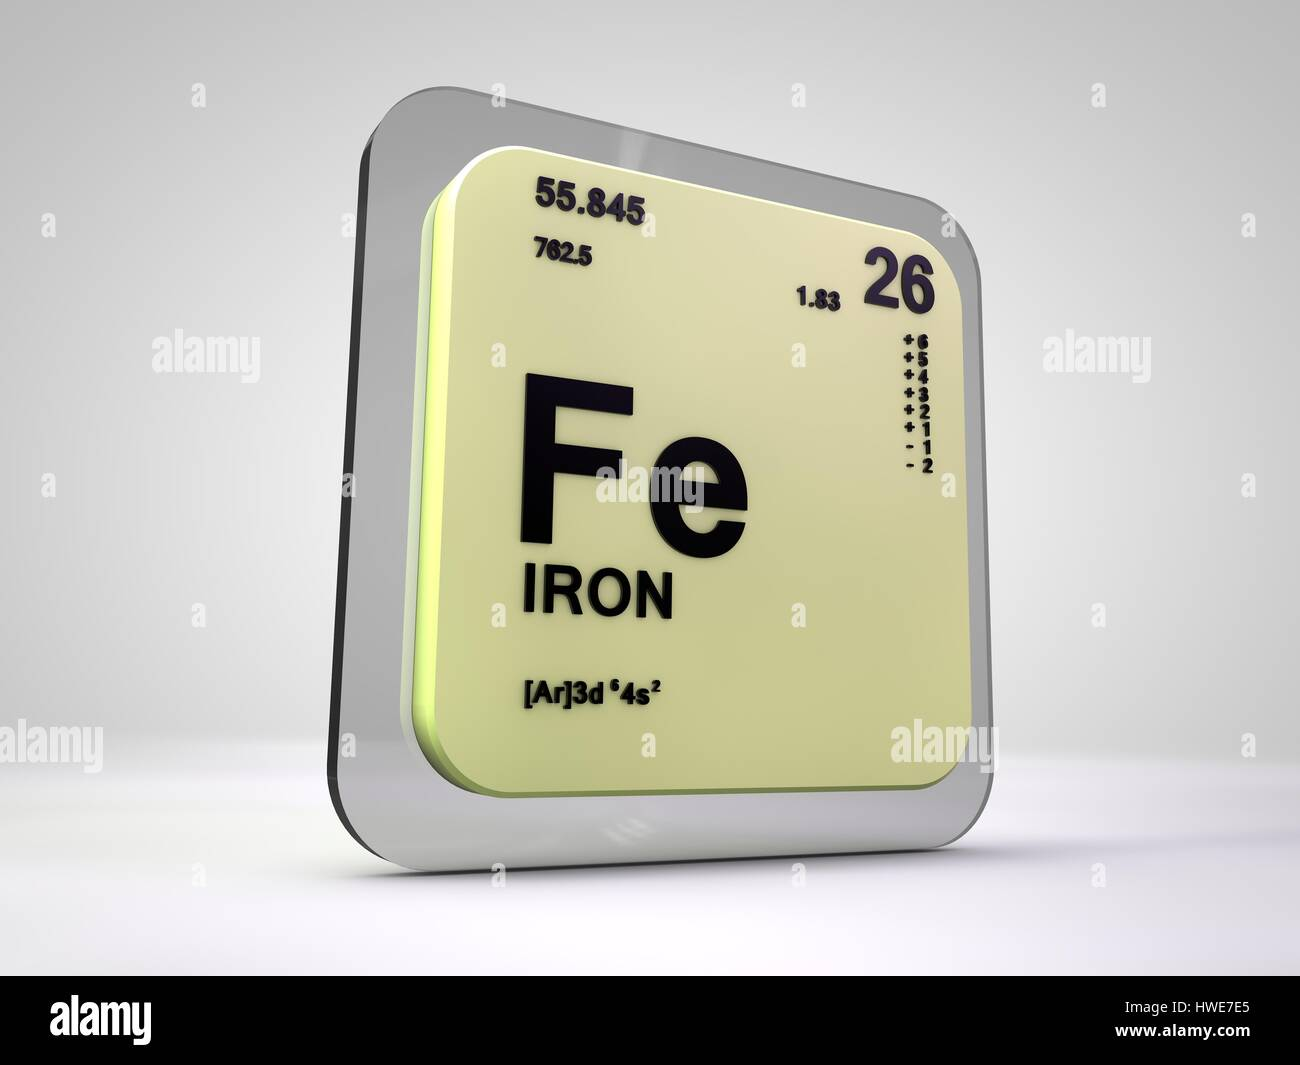 Iron fe chemical element periodic table 3d render stock photo iron fe chemical element periodic table 3d render gamestrikefo Image collections